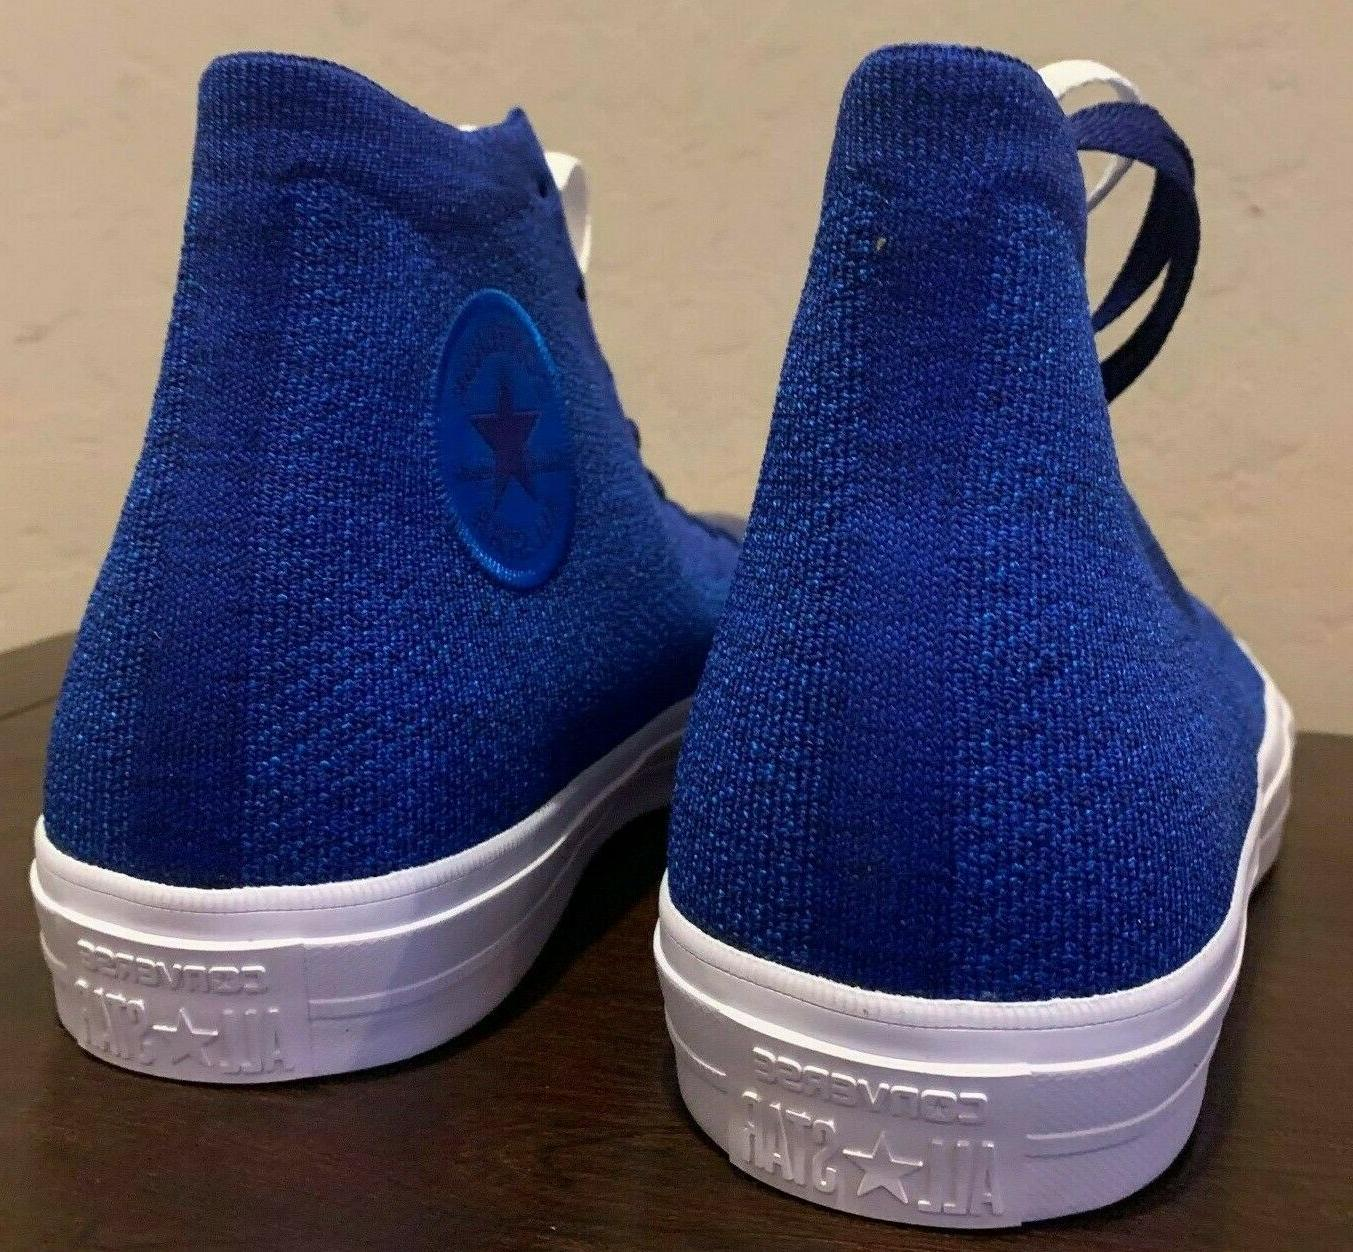 CONVERSE TAYLOR ALL STAR SHOES 12 $110 NEW